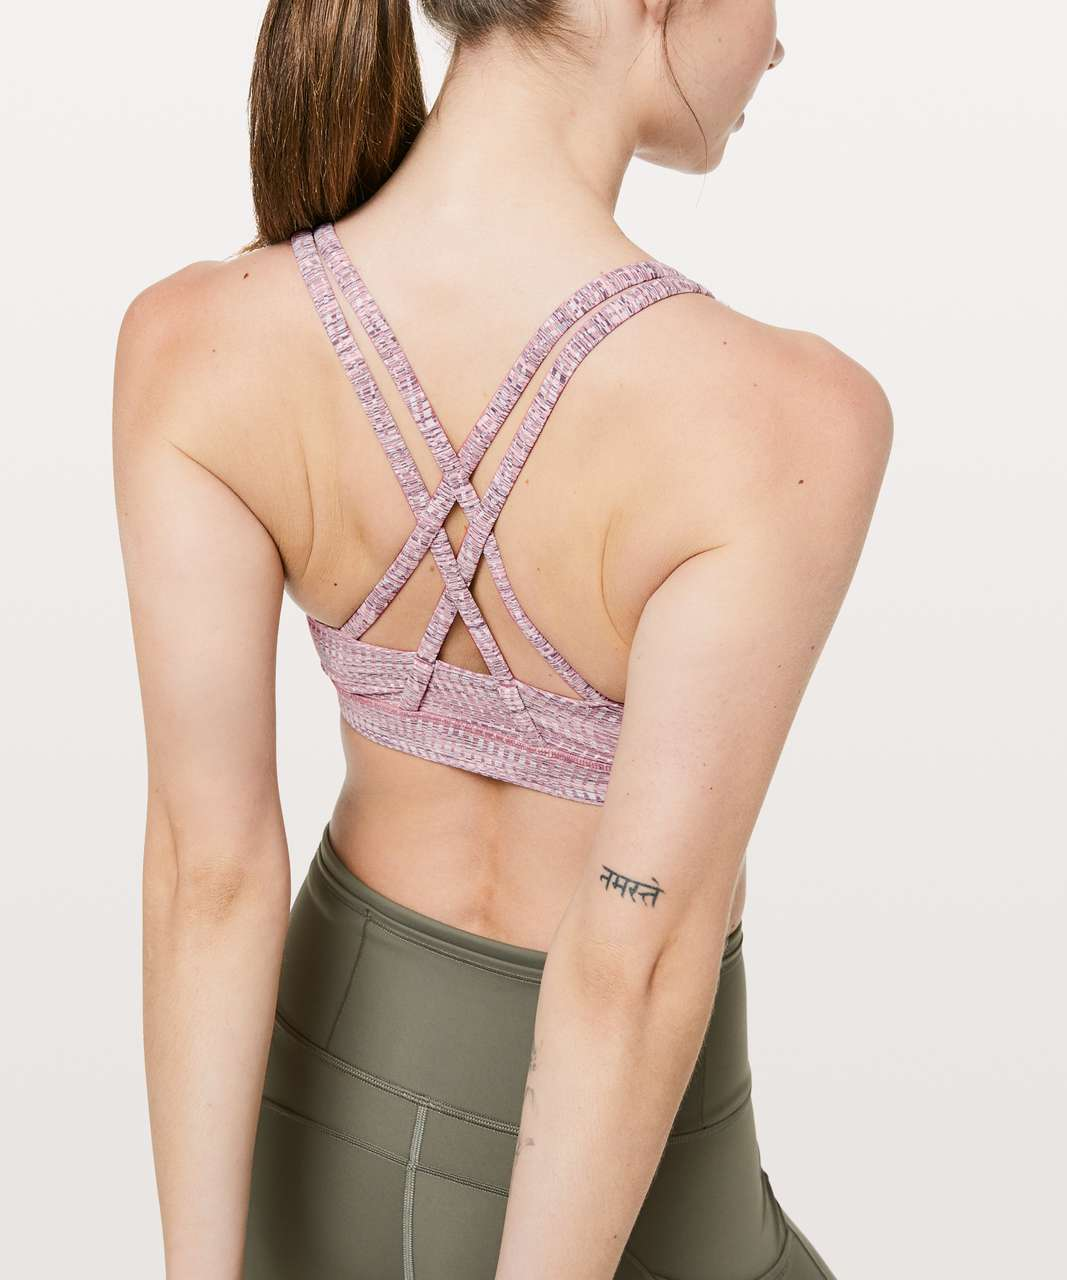 Lululemon Energy Bra - Arrow Jacquard Antique Bark Copper Coil